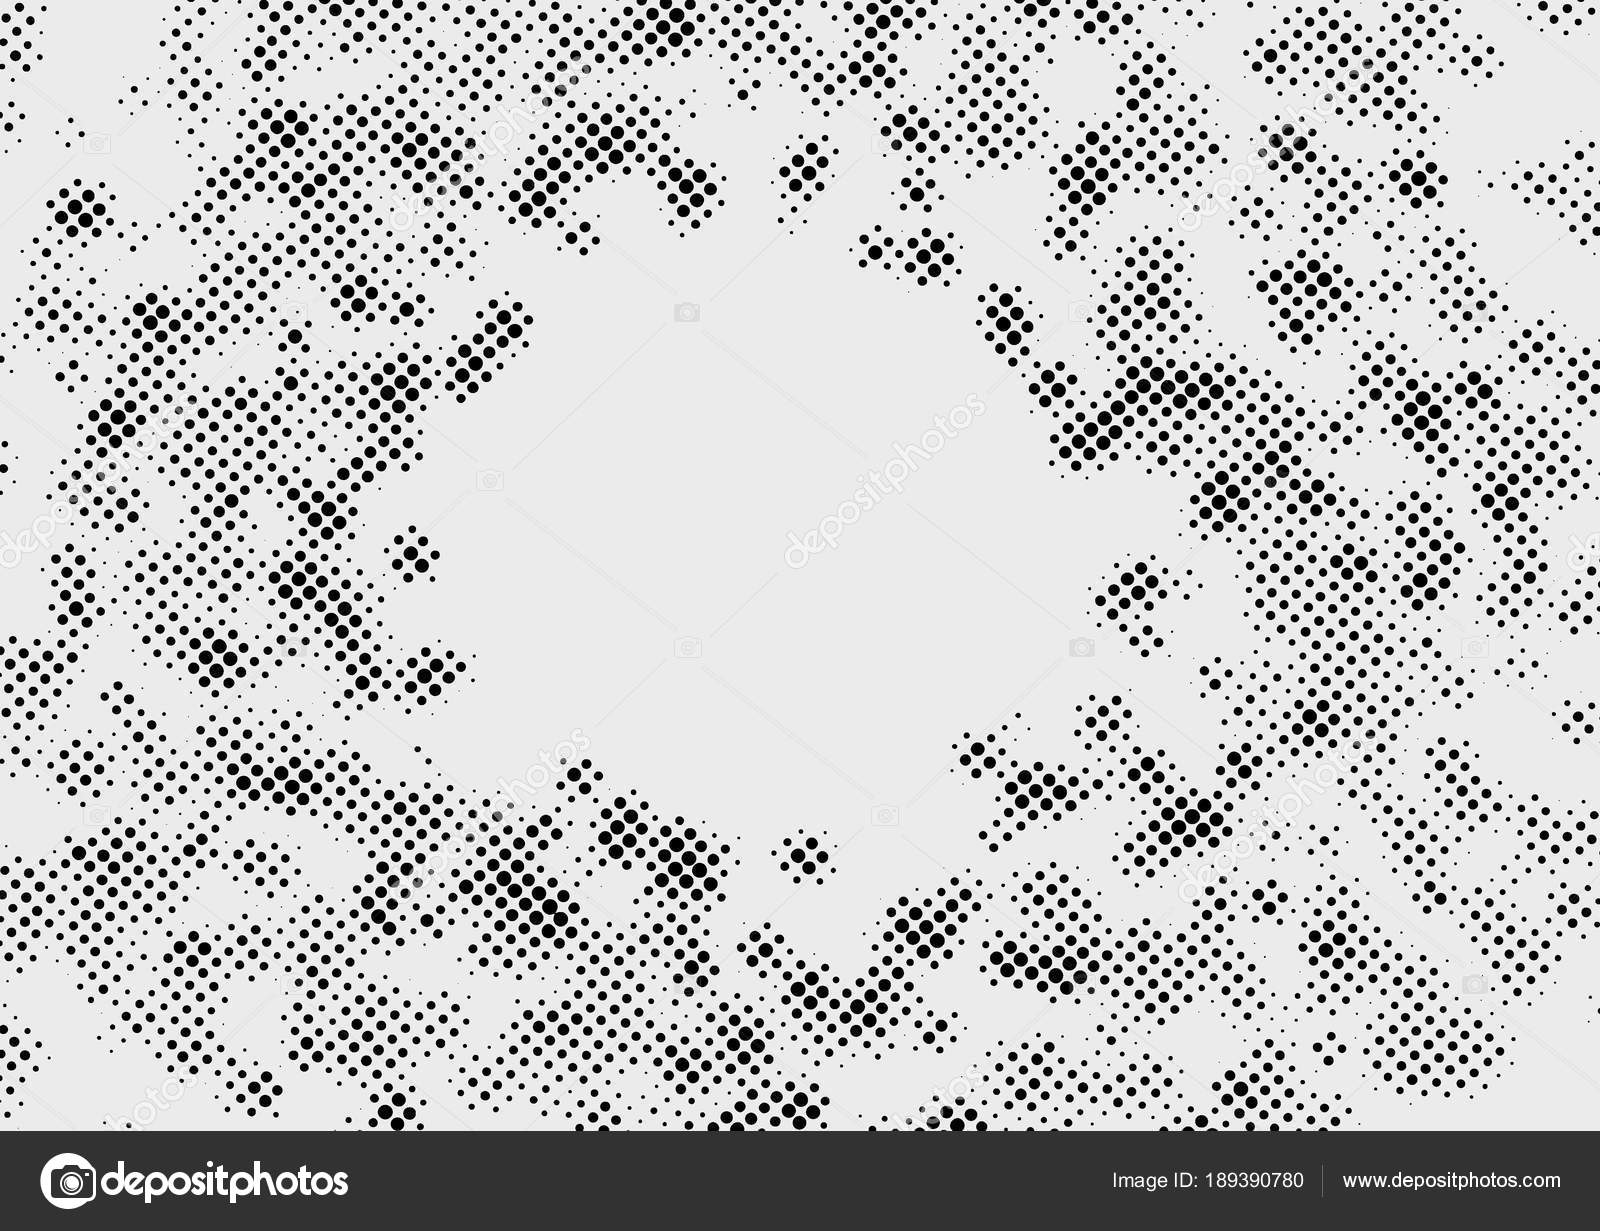 Polka Dot Old Comic Book Style Dotted Template Abstract Halftone Round Black Circles Minimalistic Graphic Design Over Grey Background Layout